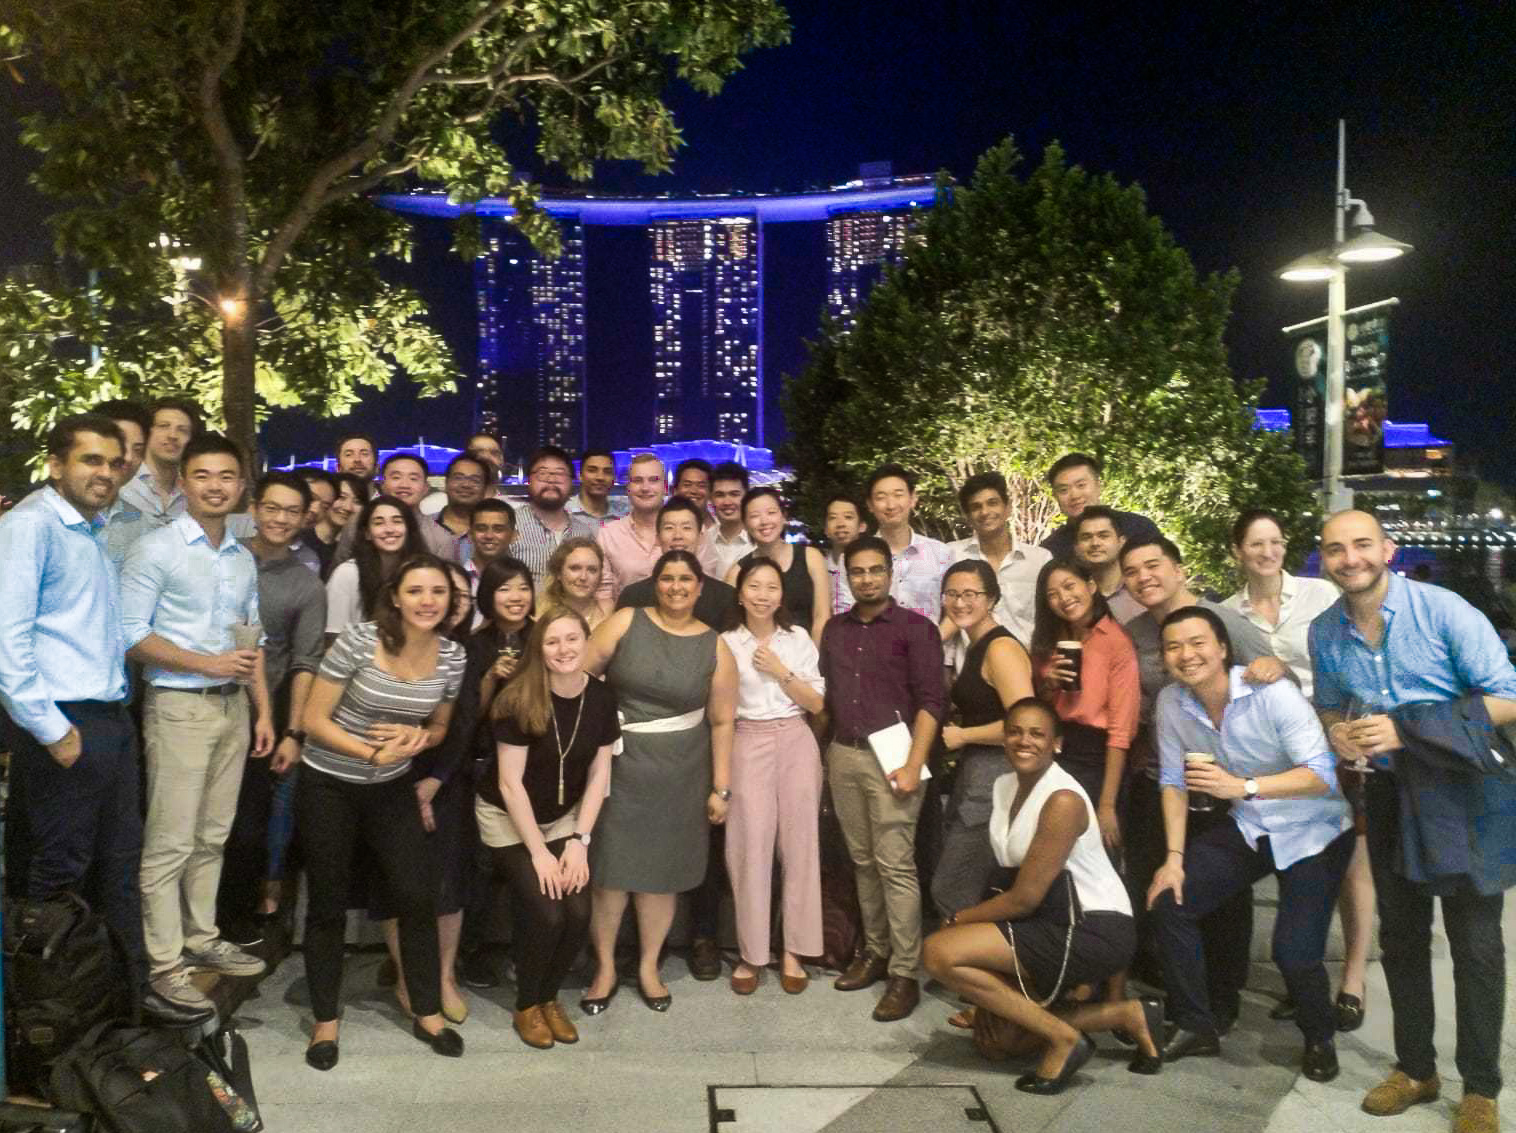 An evening networking event organized by MBA alumni living in Singapore